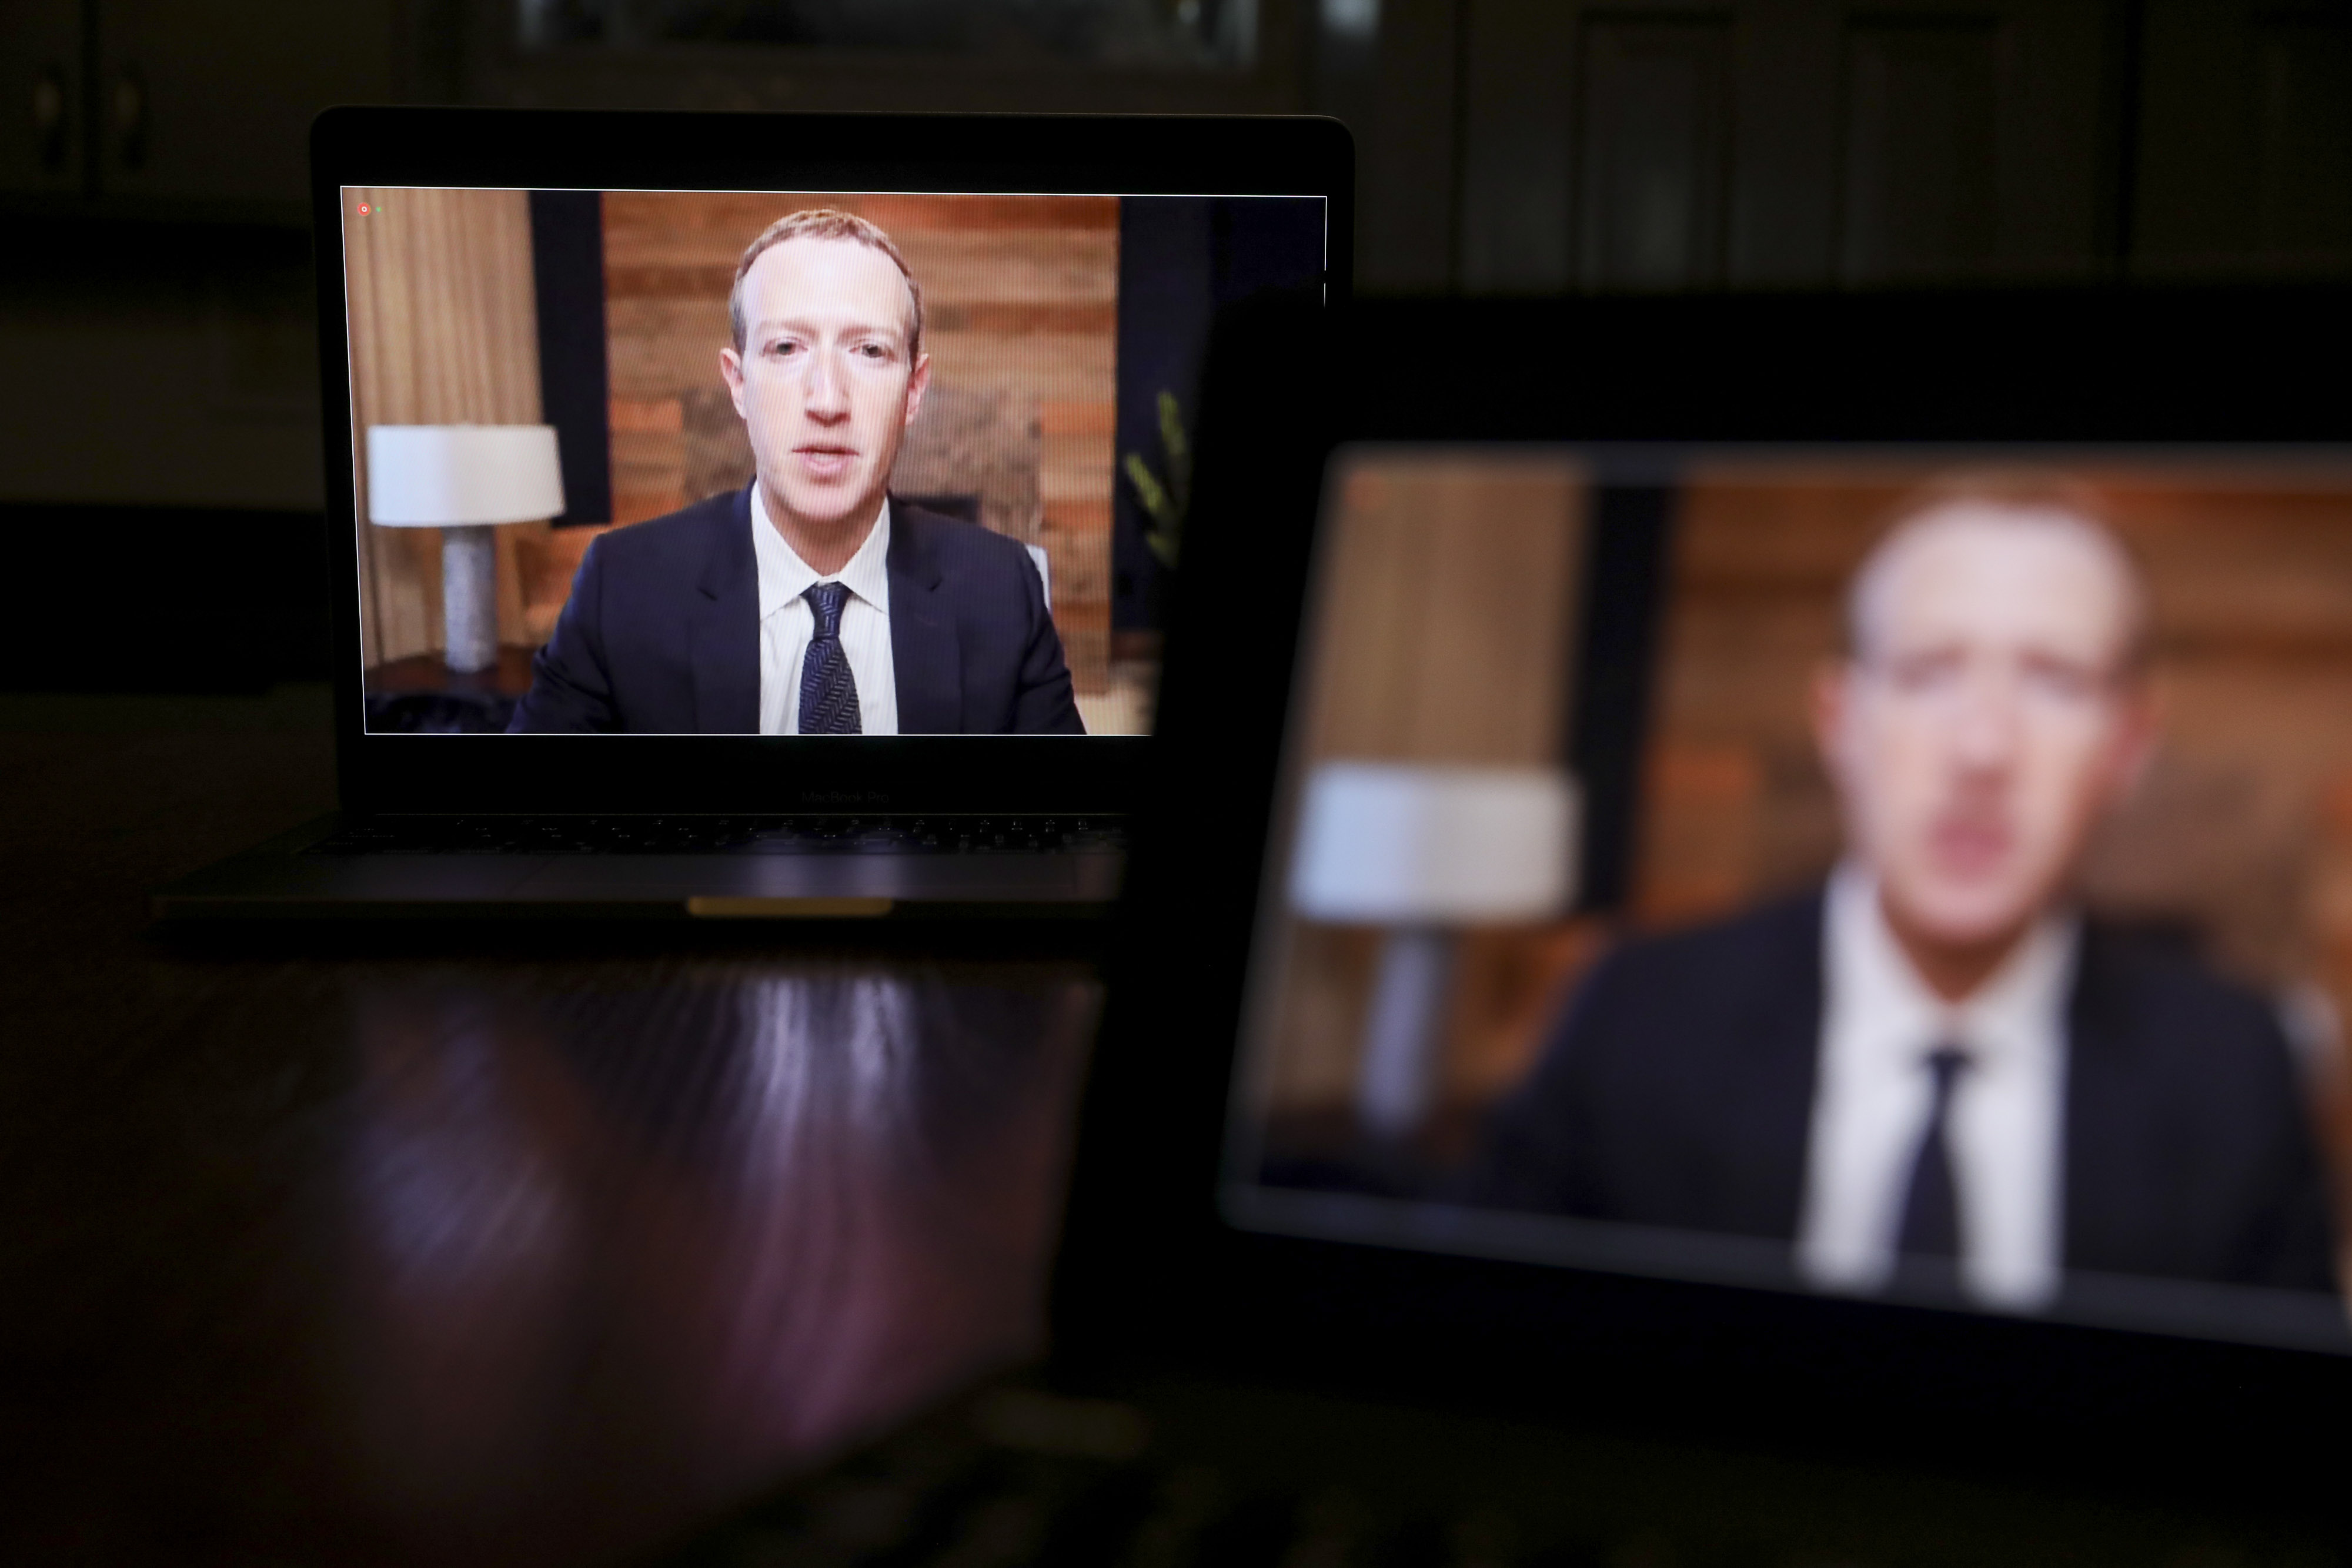 Facebook CEO Mark Zuckerberg on two laptop screens at a congressional hearing.